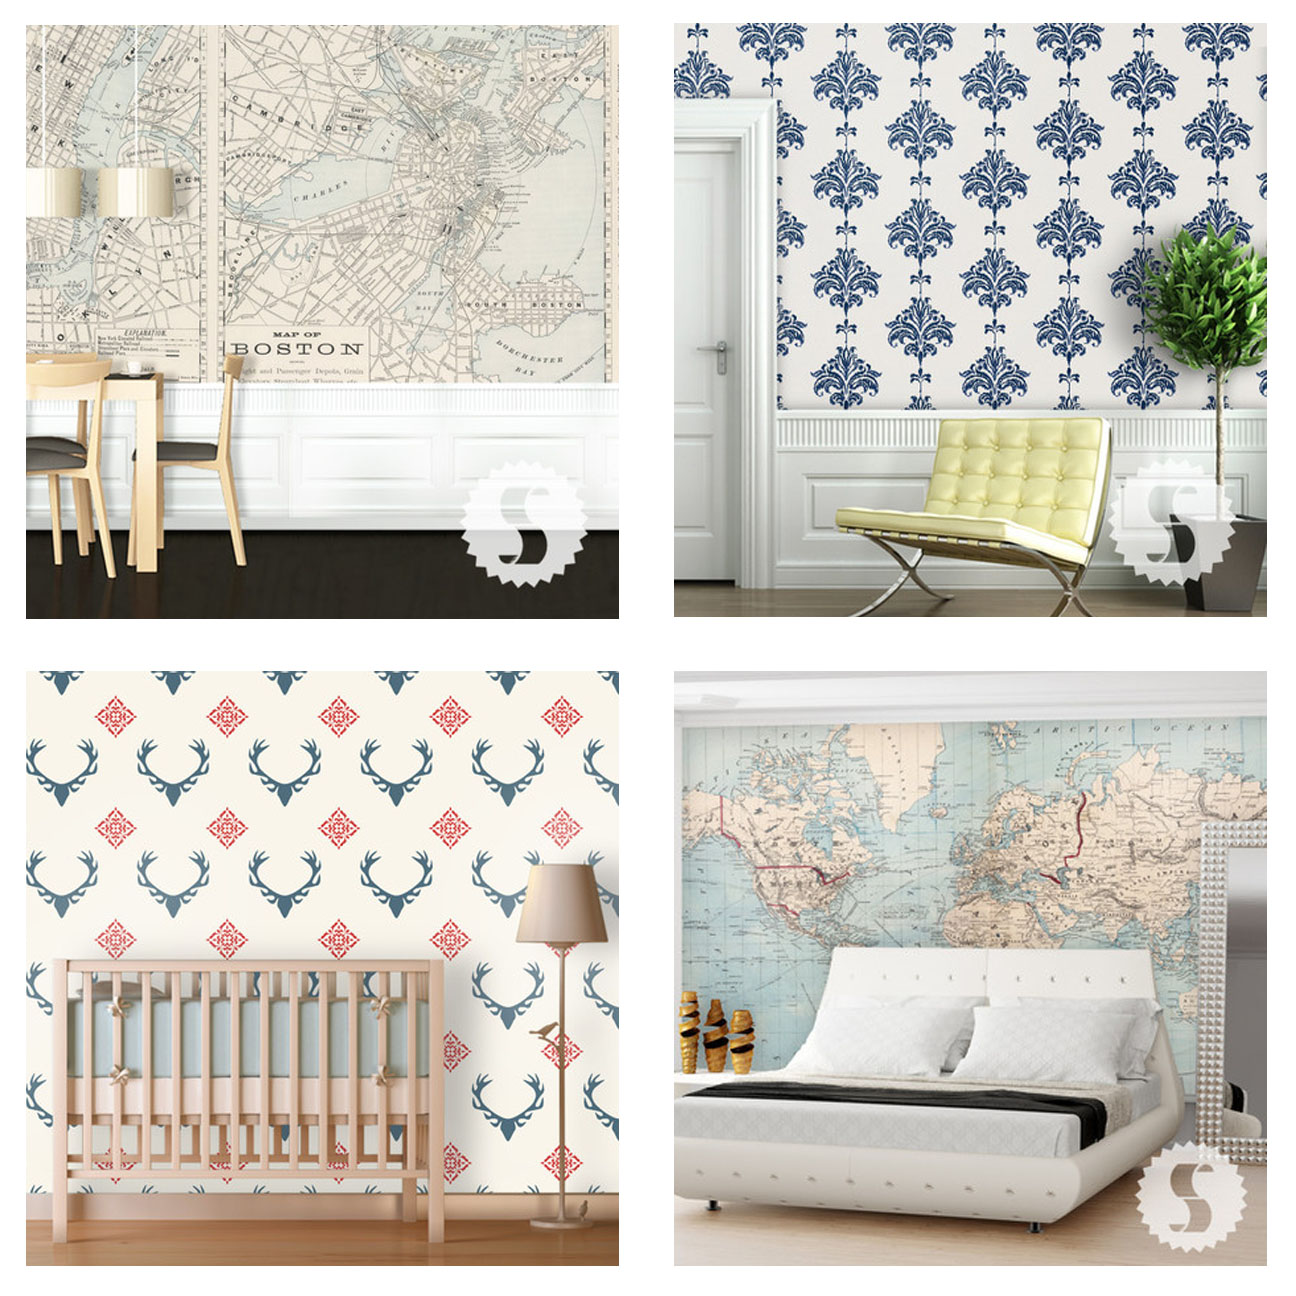 Swag Paper Removable Wallpaper Boston   Retro top left Ikat   Navy 1296x1296